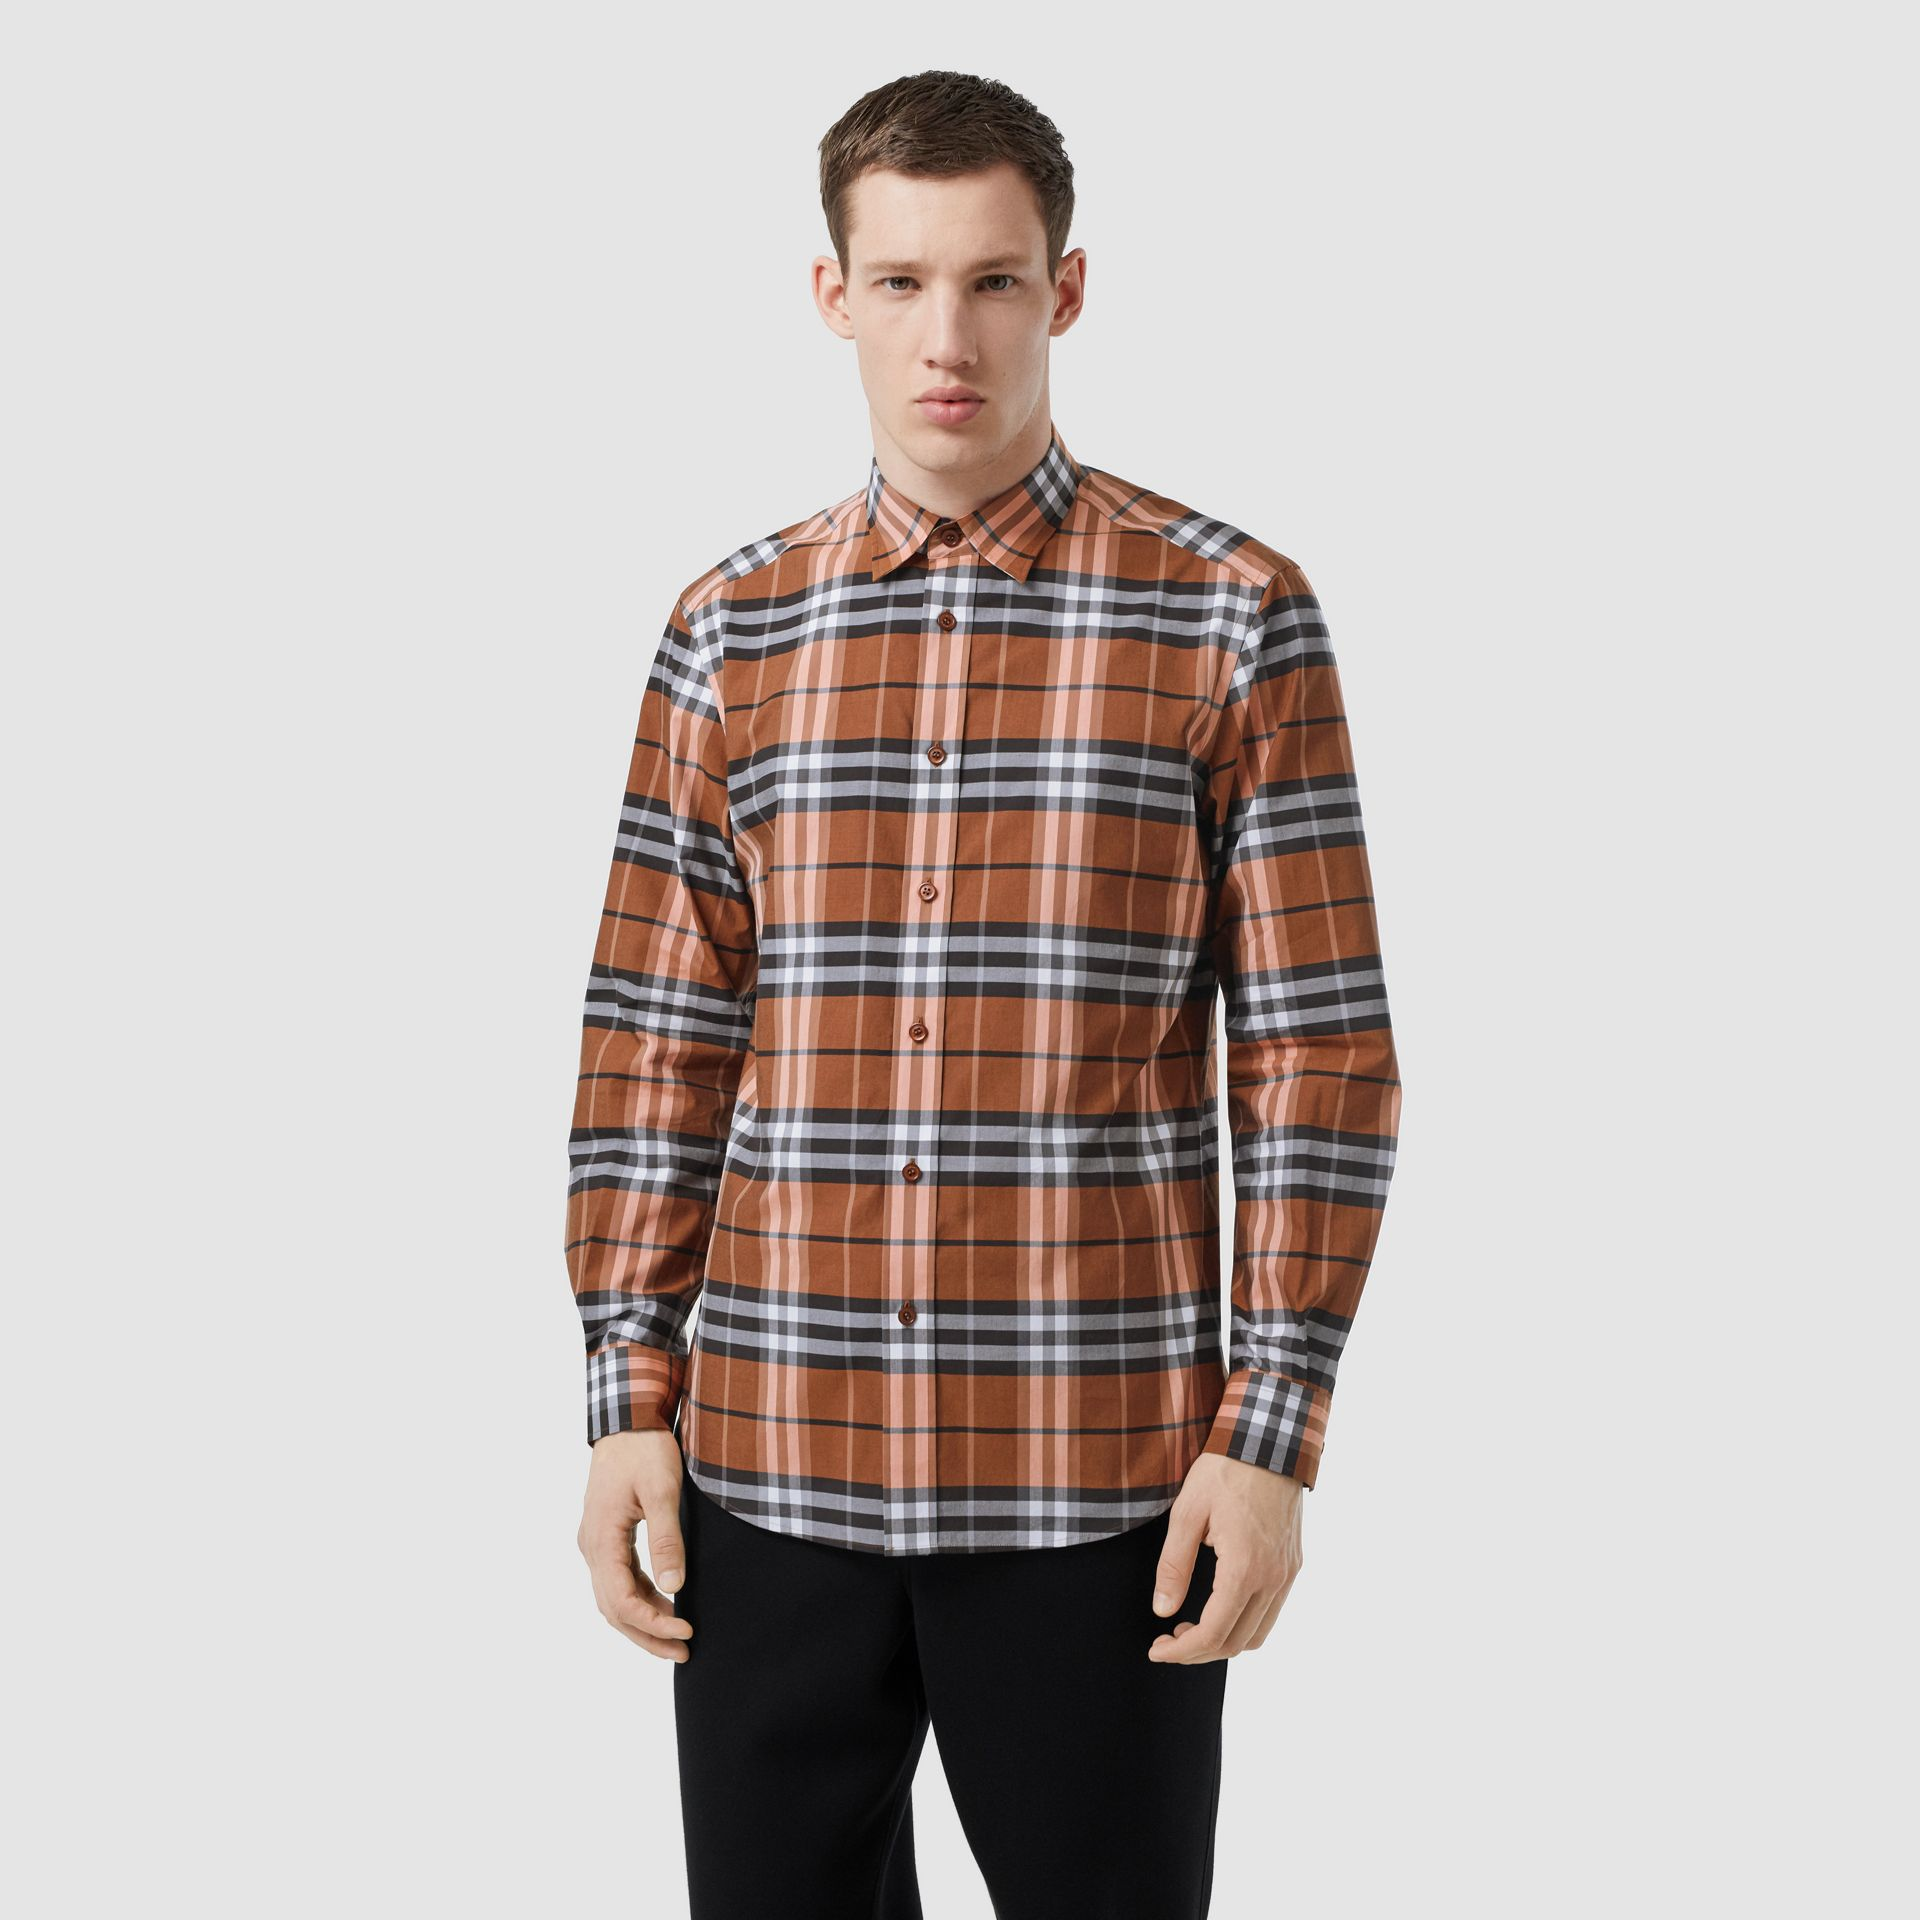 Vintage Check Cotton Poplin Shirt in Clementine - Men | Burberry Australia - gallery image 5